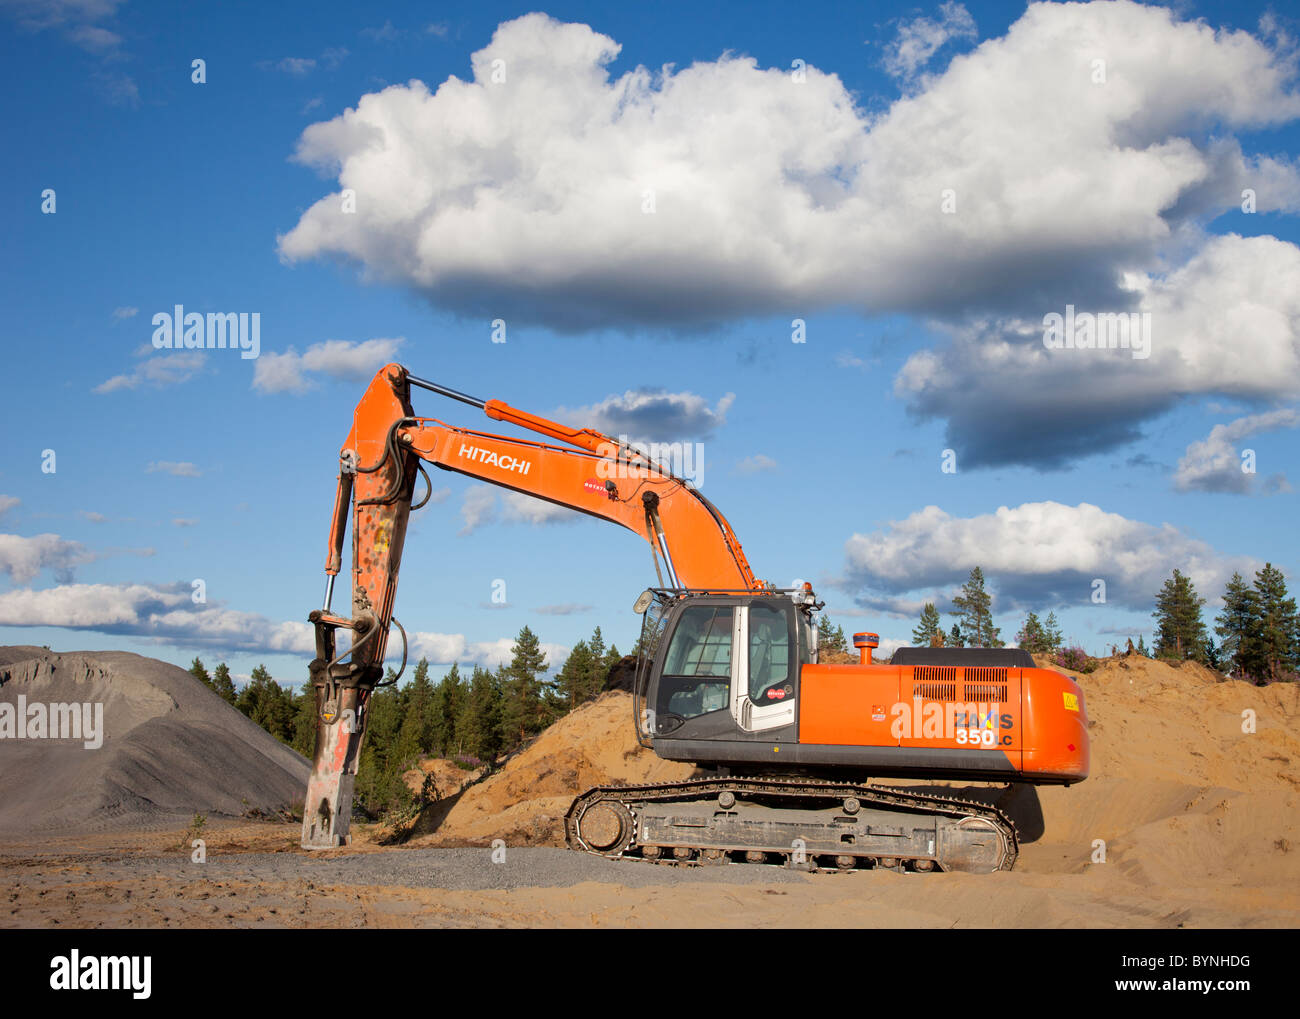 Hitachi ZAxis 350 lc excavator equipped with hydraulic rock breaker for rock quarry usage - Stock Image